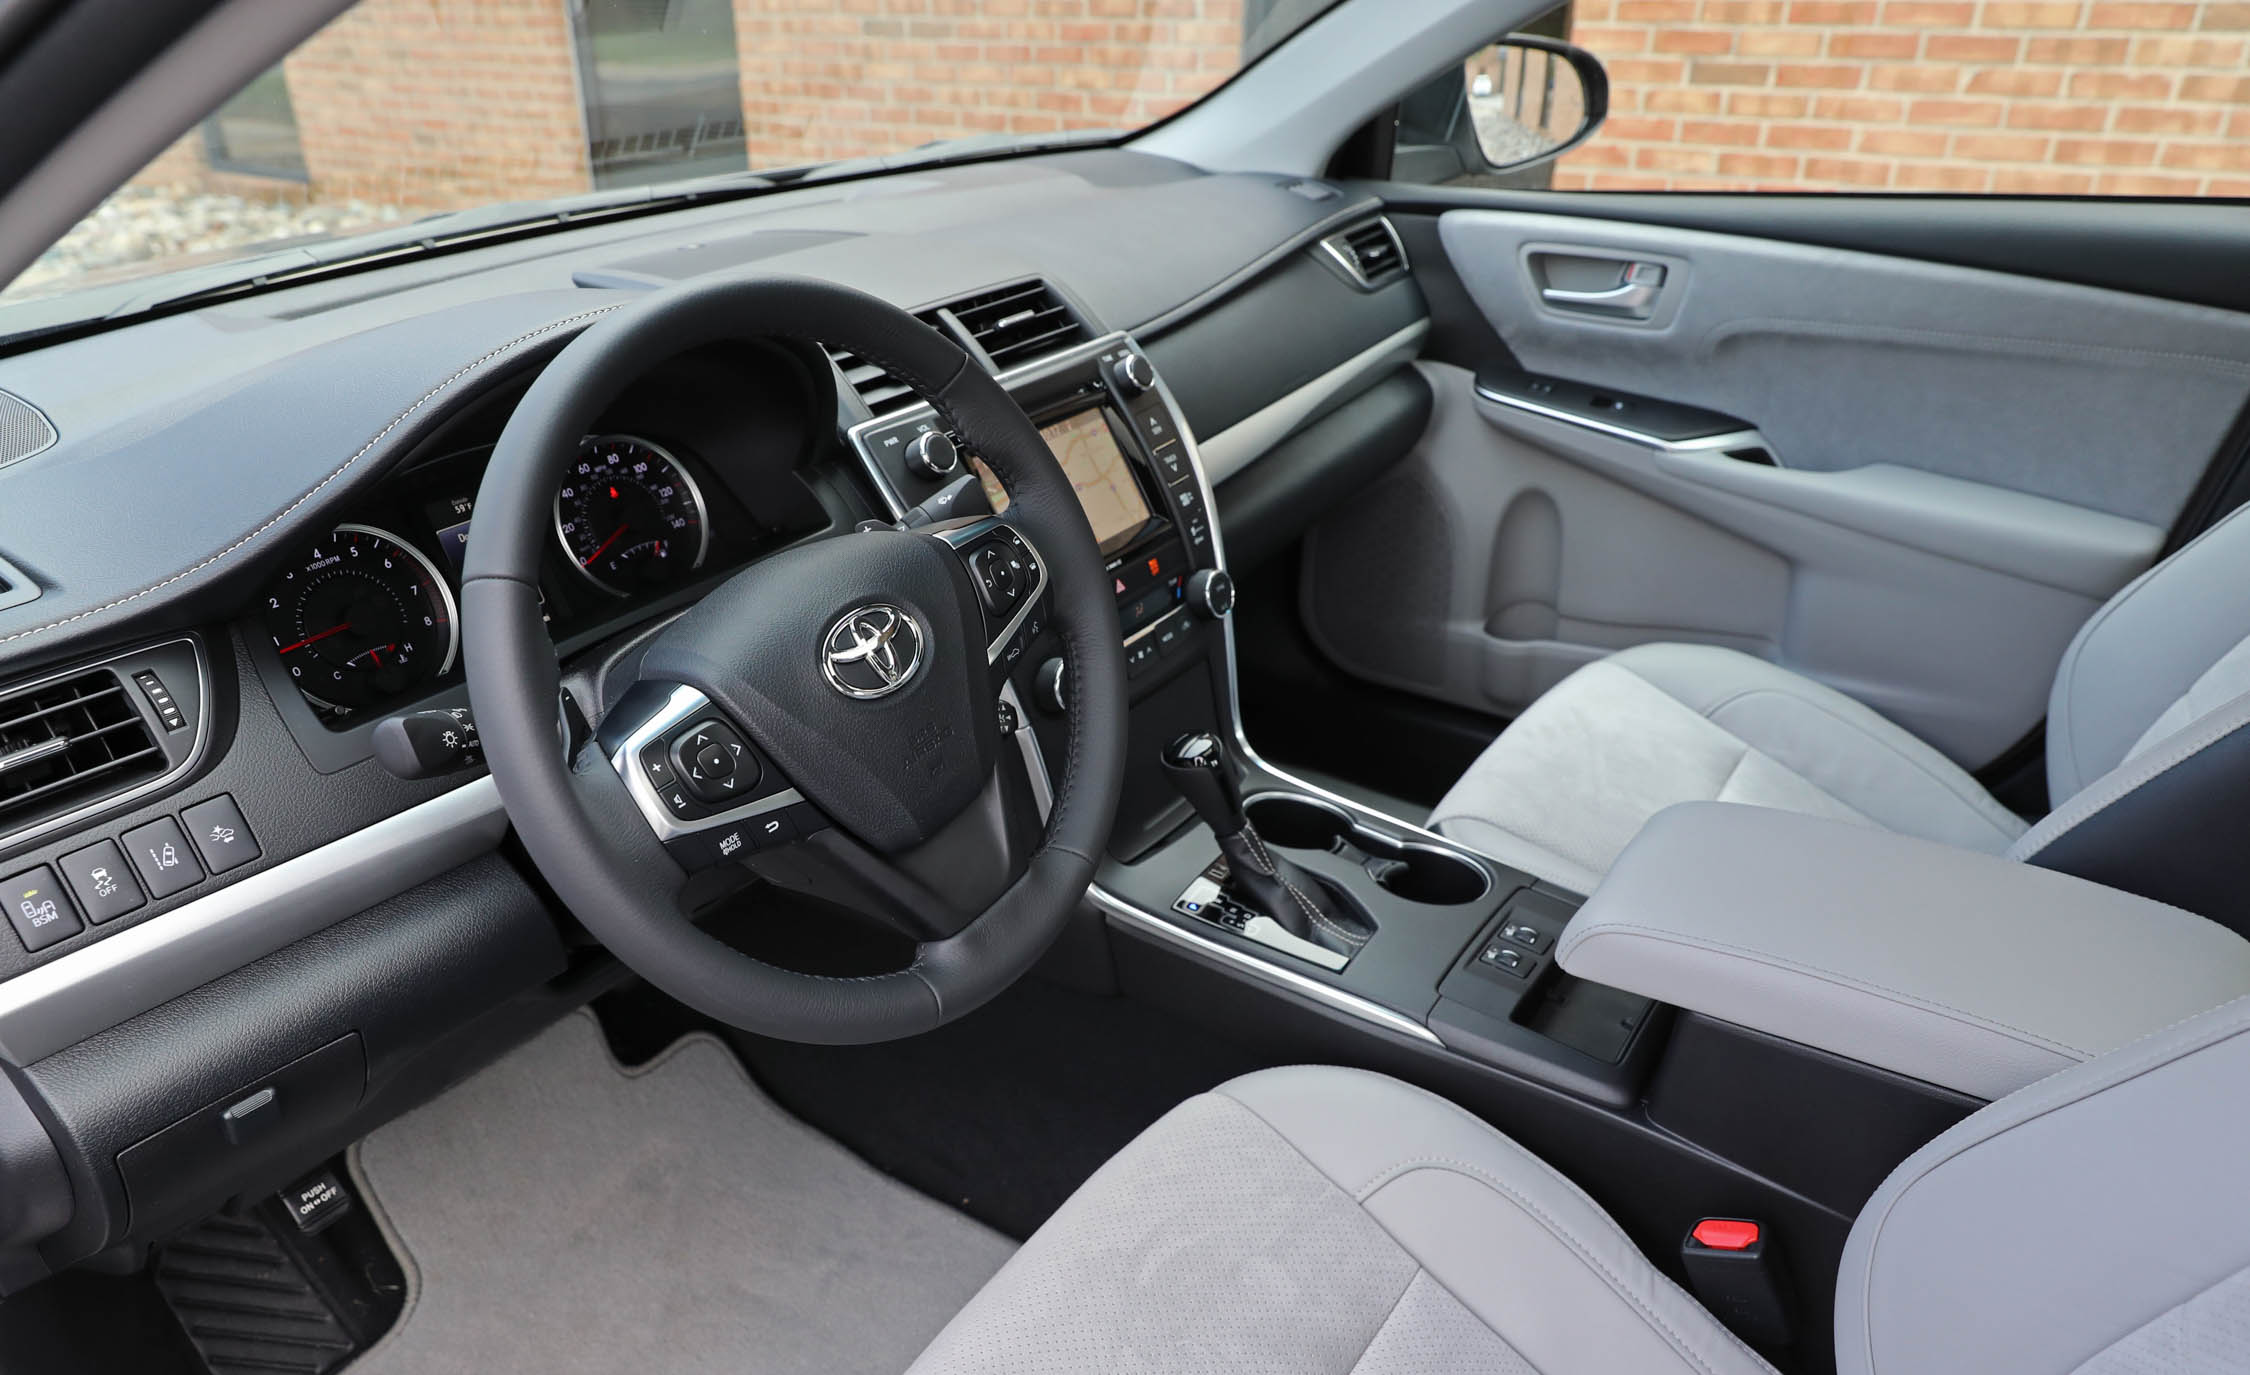 2017 Toyota Camry Interior Cockpit (Photo 16 of 37)